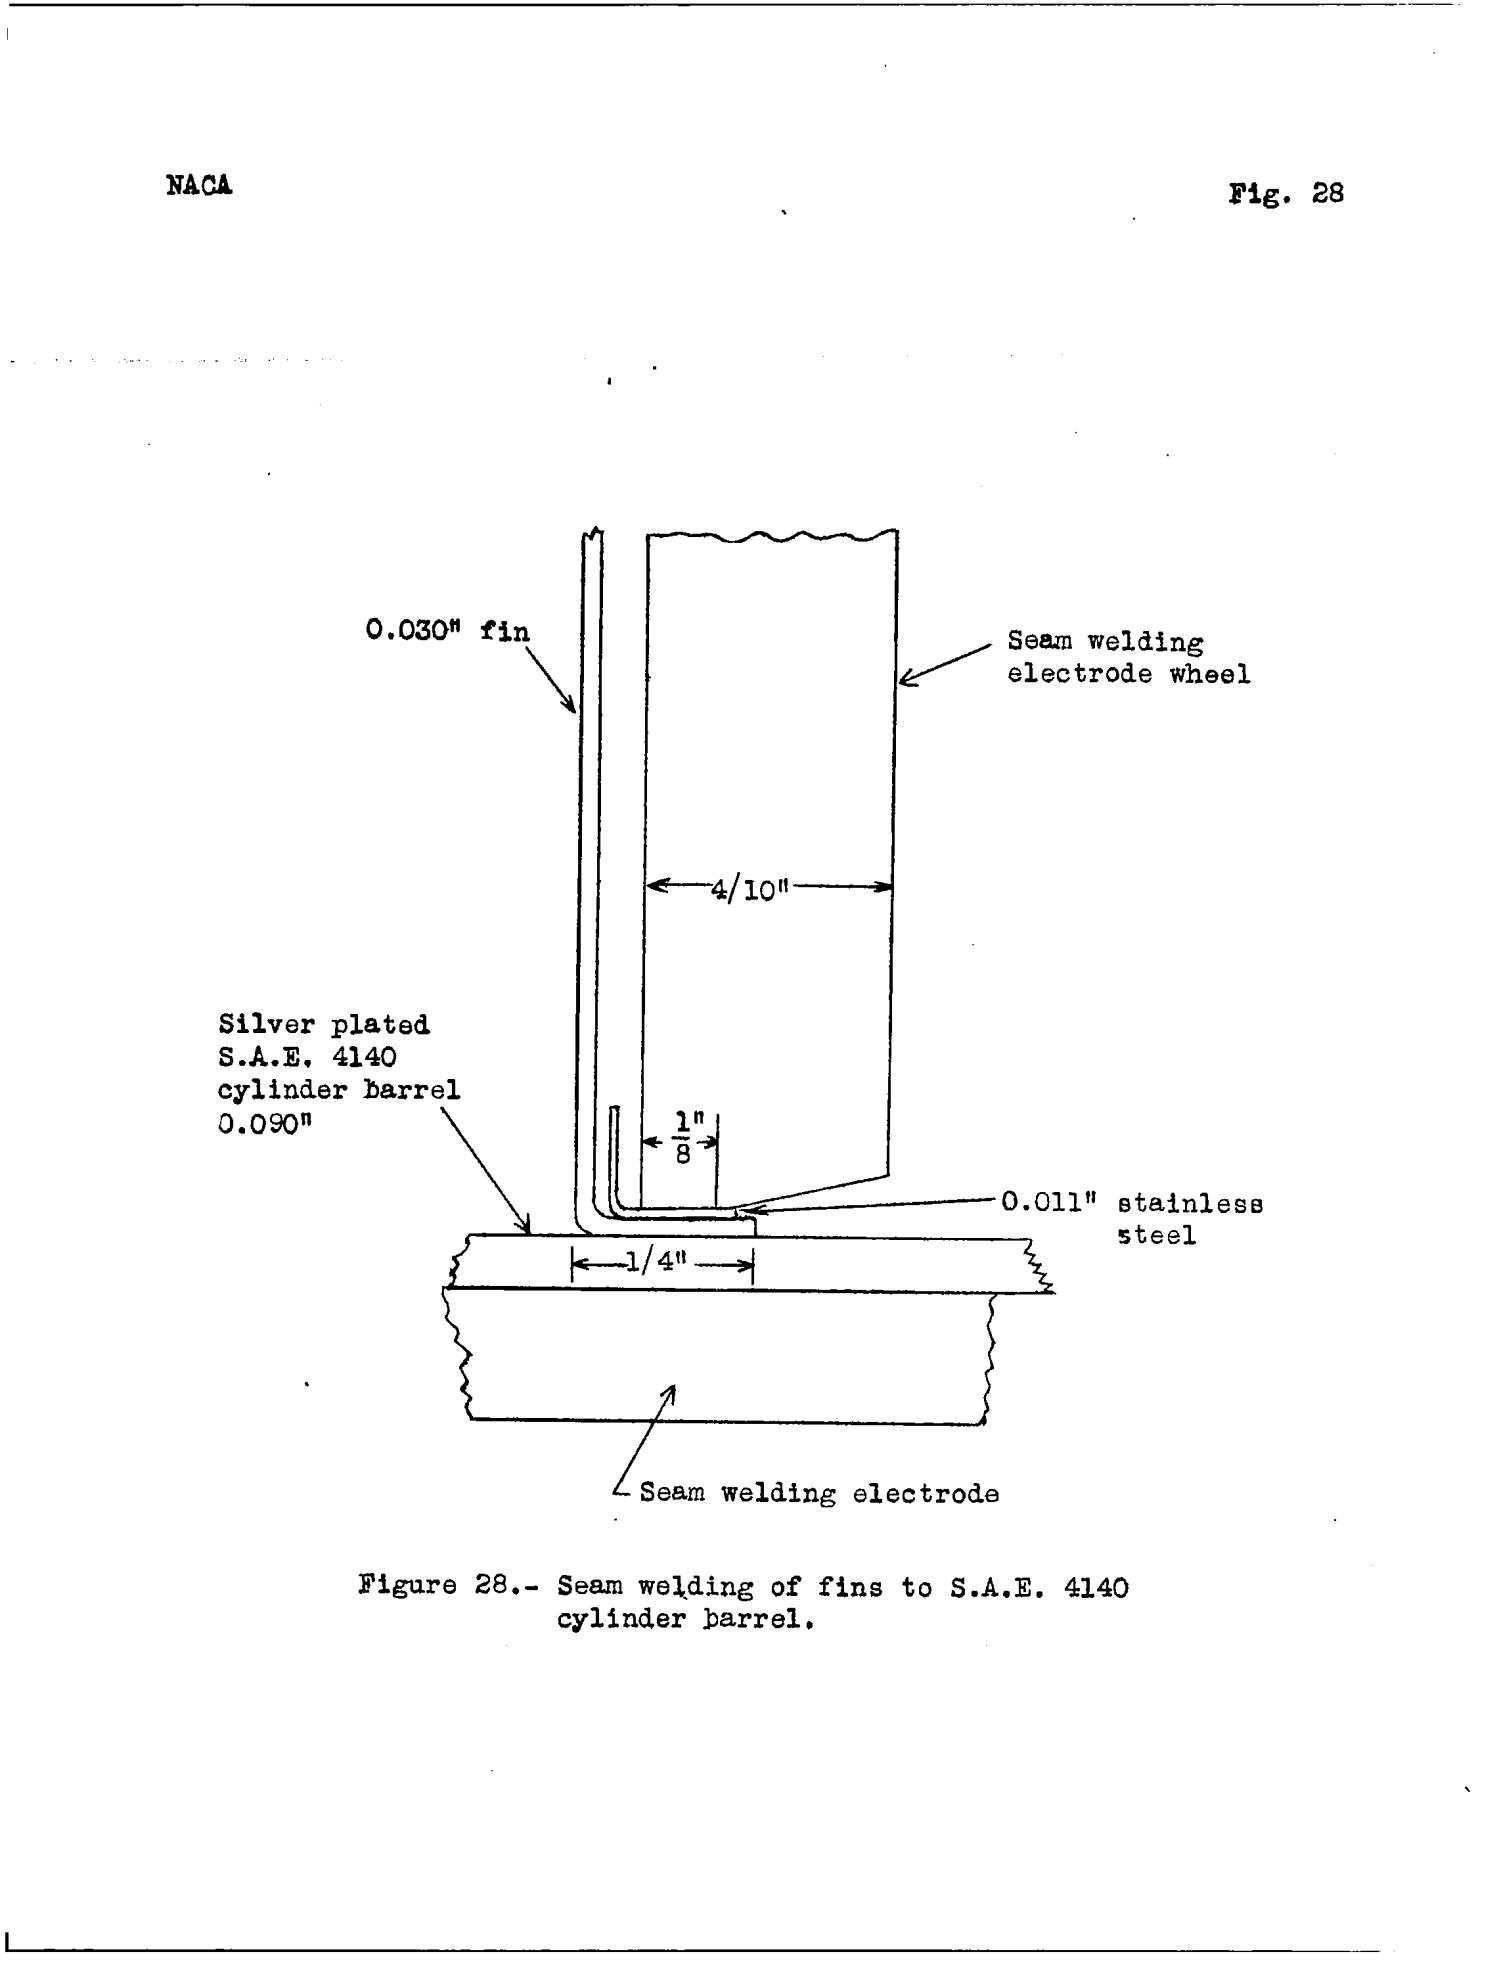 A Method For Welding Sheet Aluminum To Sae 4140 Steel Page 53 Of Electrode Diagram